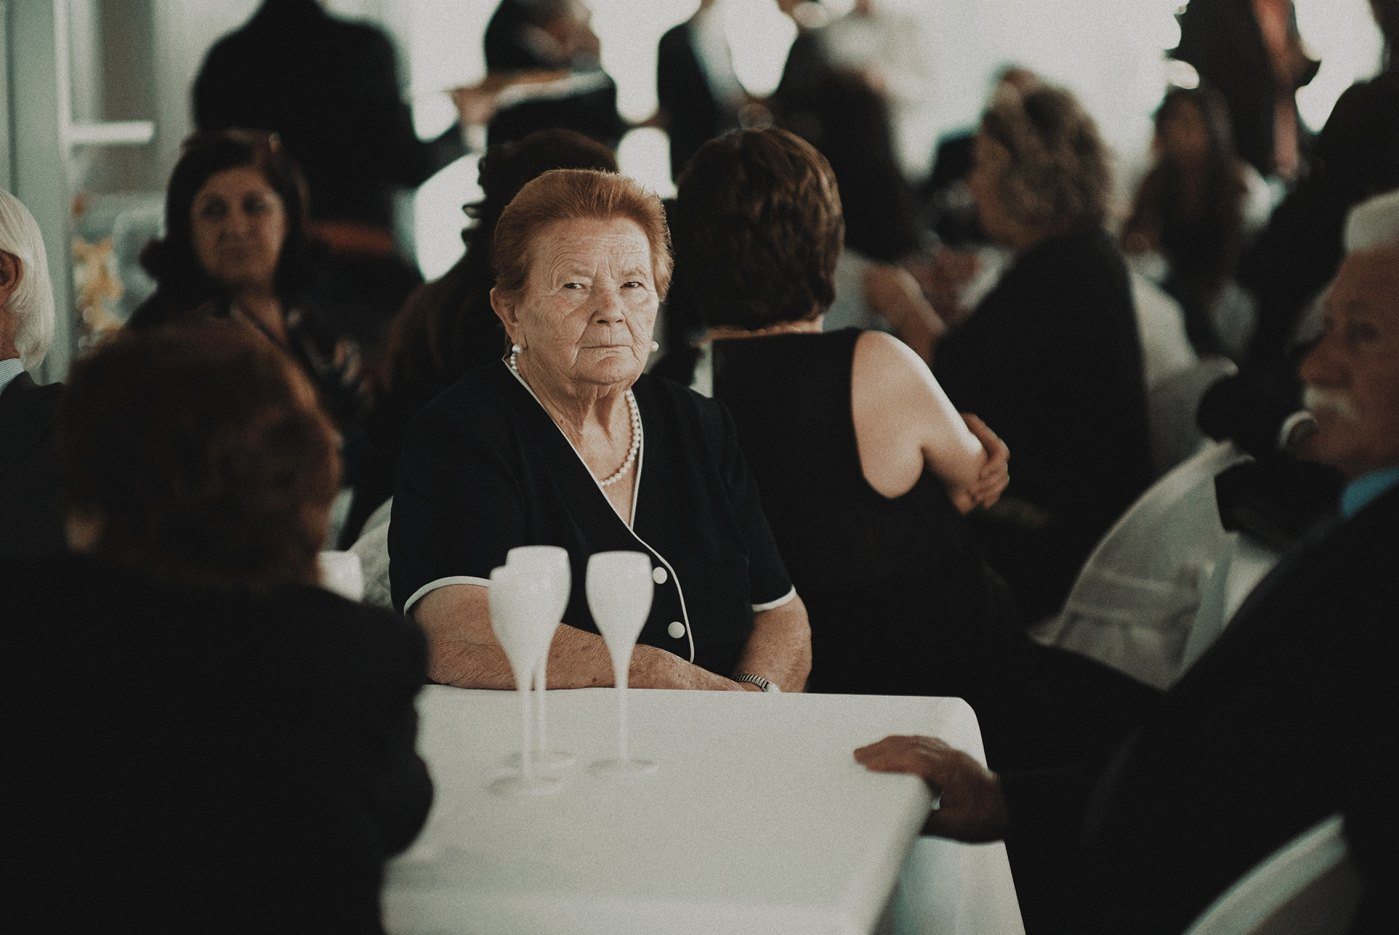 Funerals are Vitals Spaces for Emotional Learning